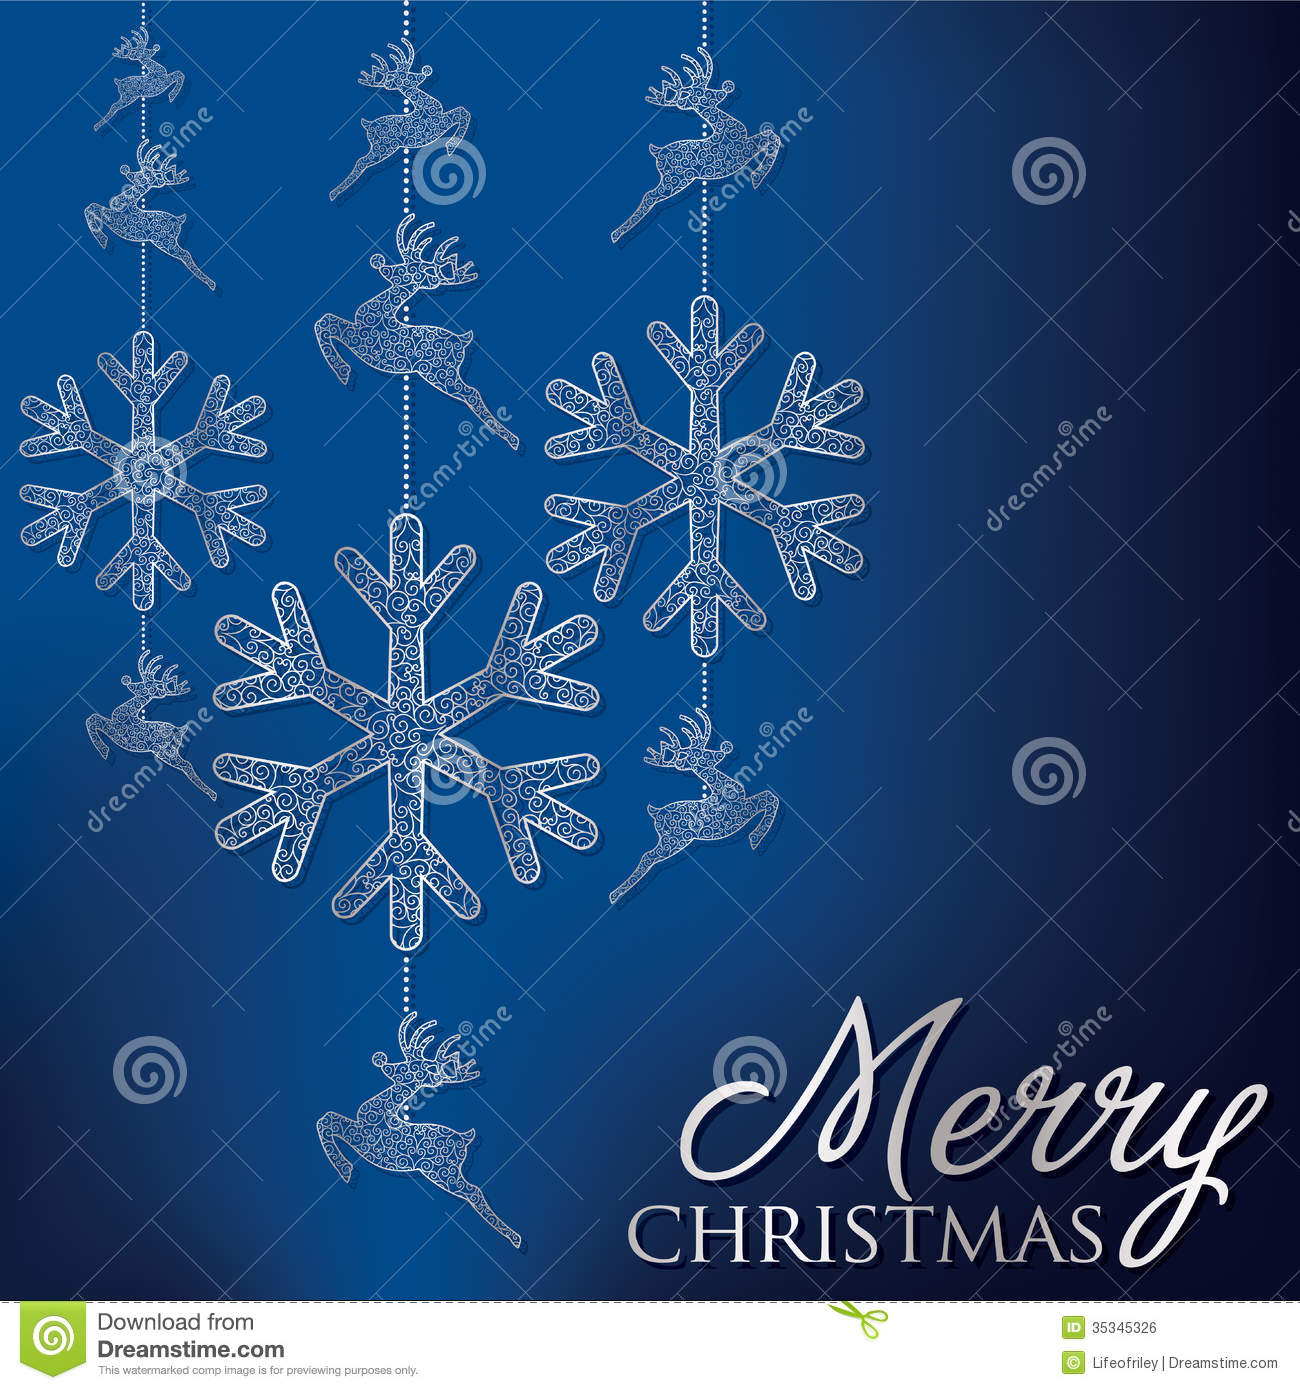 Merry christmas stock vector illustration of gold formal 35345326 merry christmas gold formal m4hsunfo